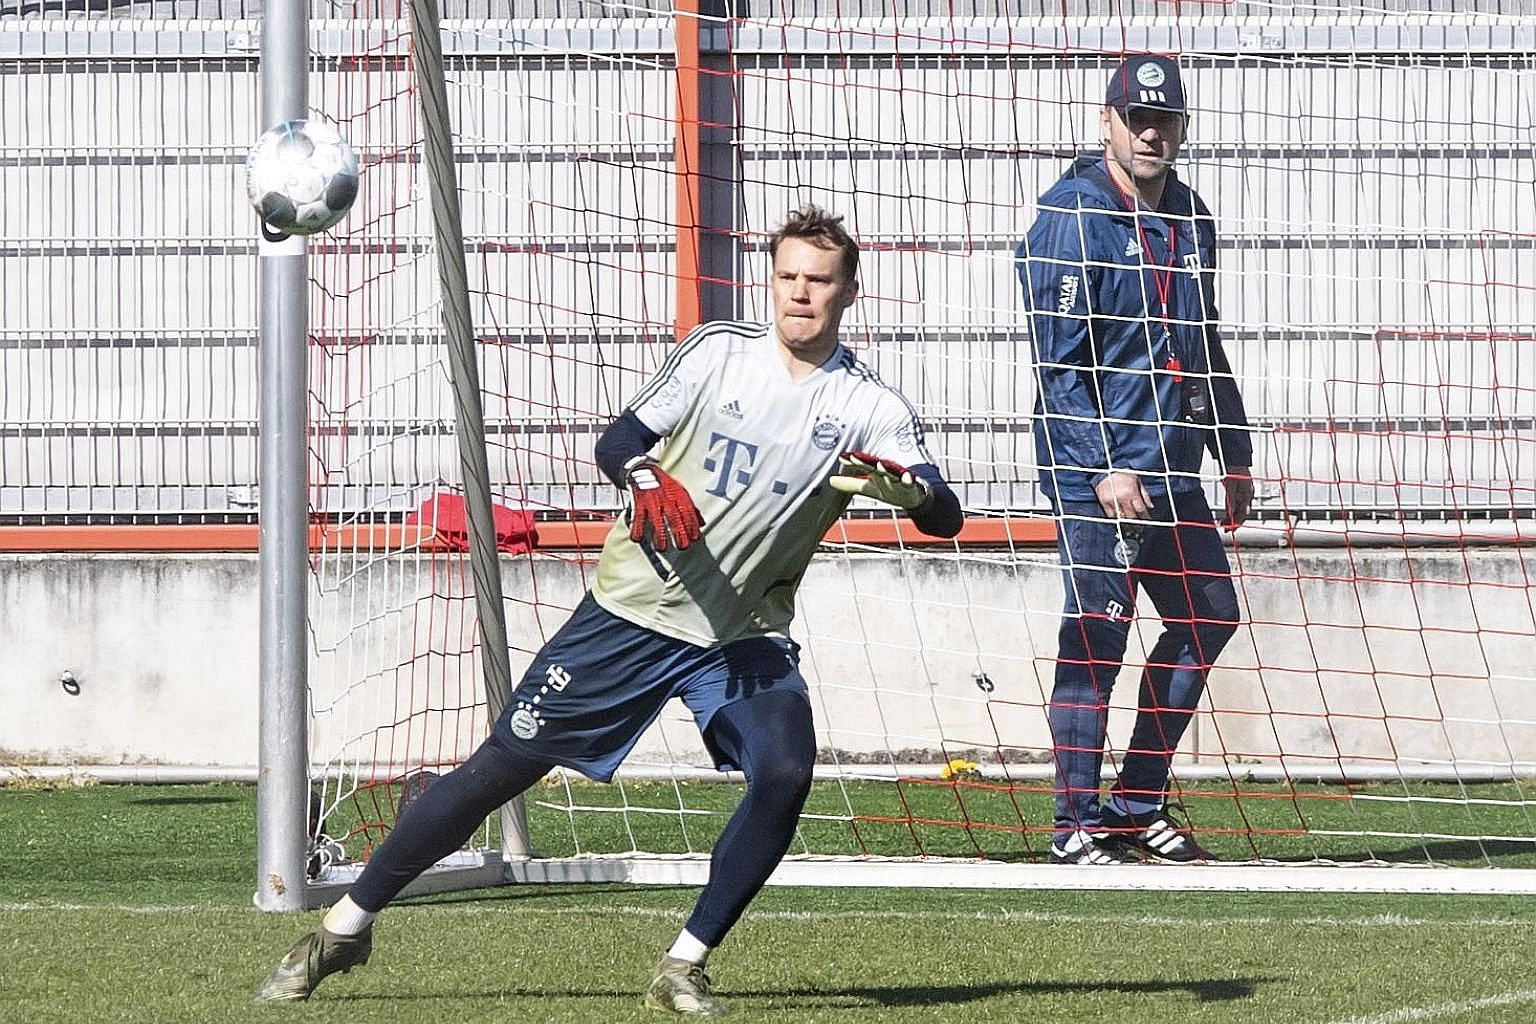 Bayern head coach Hansi Flick, who last week signed a contract extension to 2023, watching goalkeeper Manuel Neuer as the Bavarian side resumed training in groups of five and without contact in Munich yesterday. The Bundesliga remains suspended until